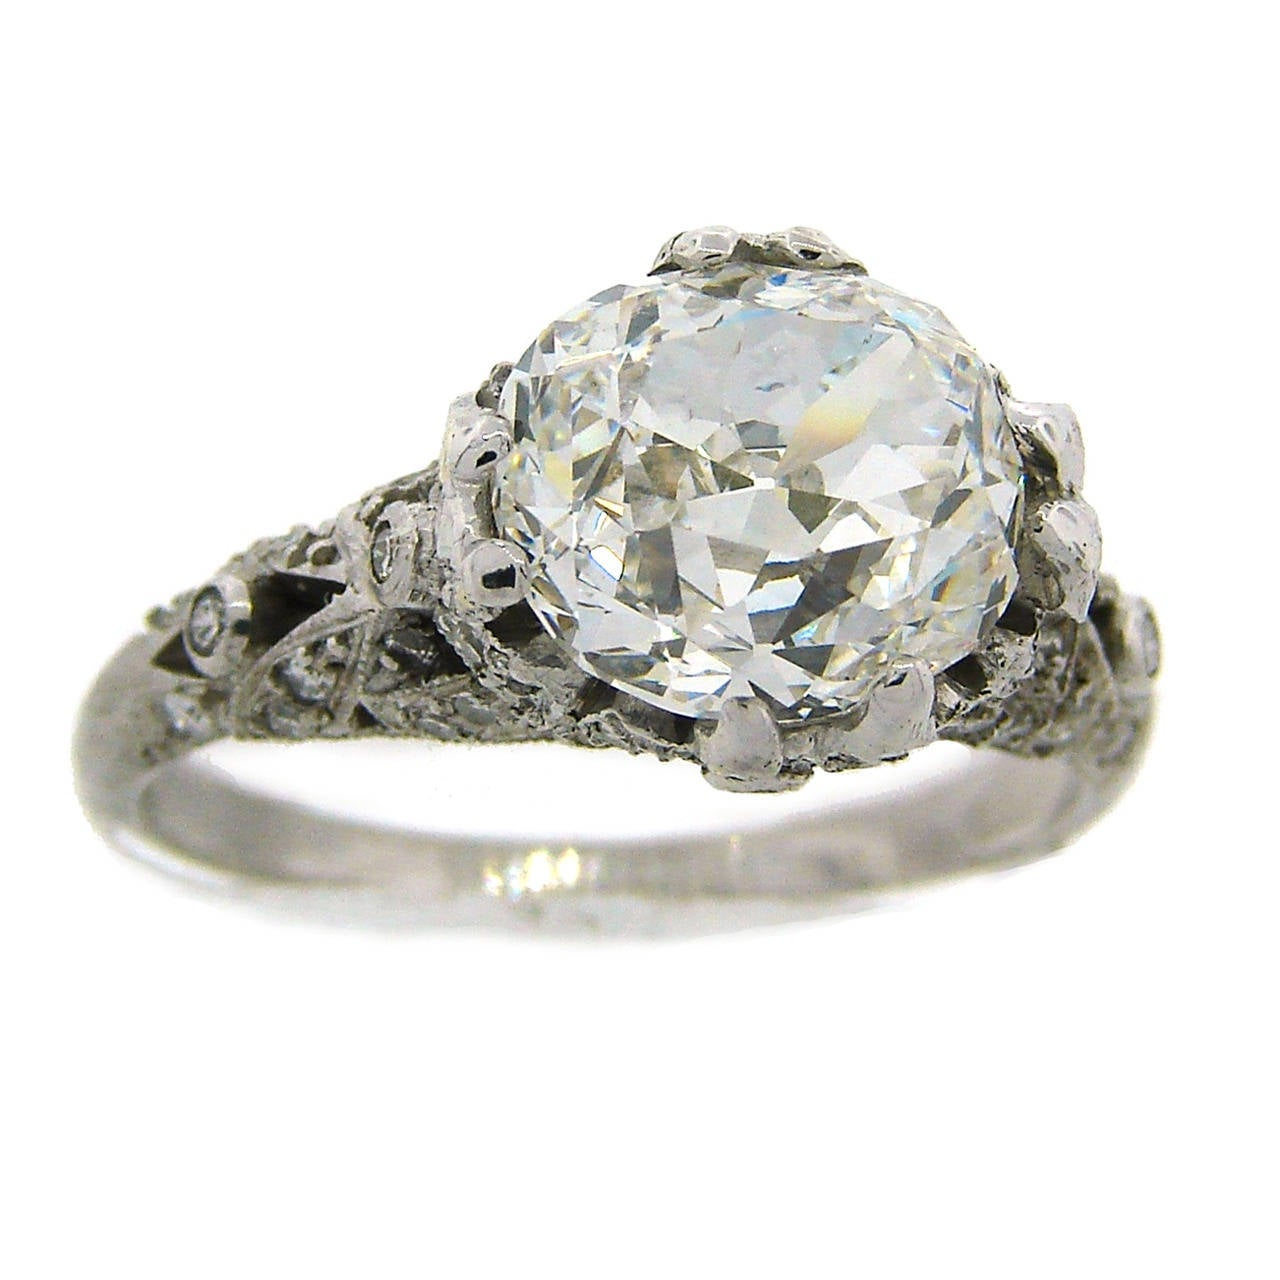 3.02 Carat GIA Cert Cushion Cut Diamond Platinum Engagement Ring circa 1920s For Sale